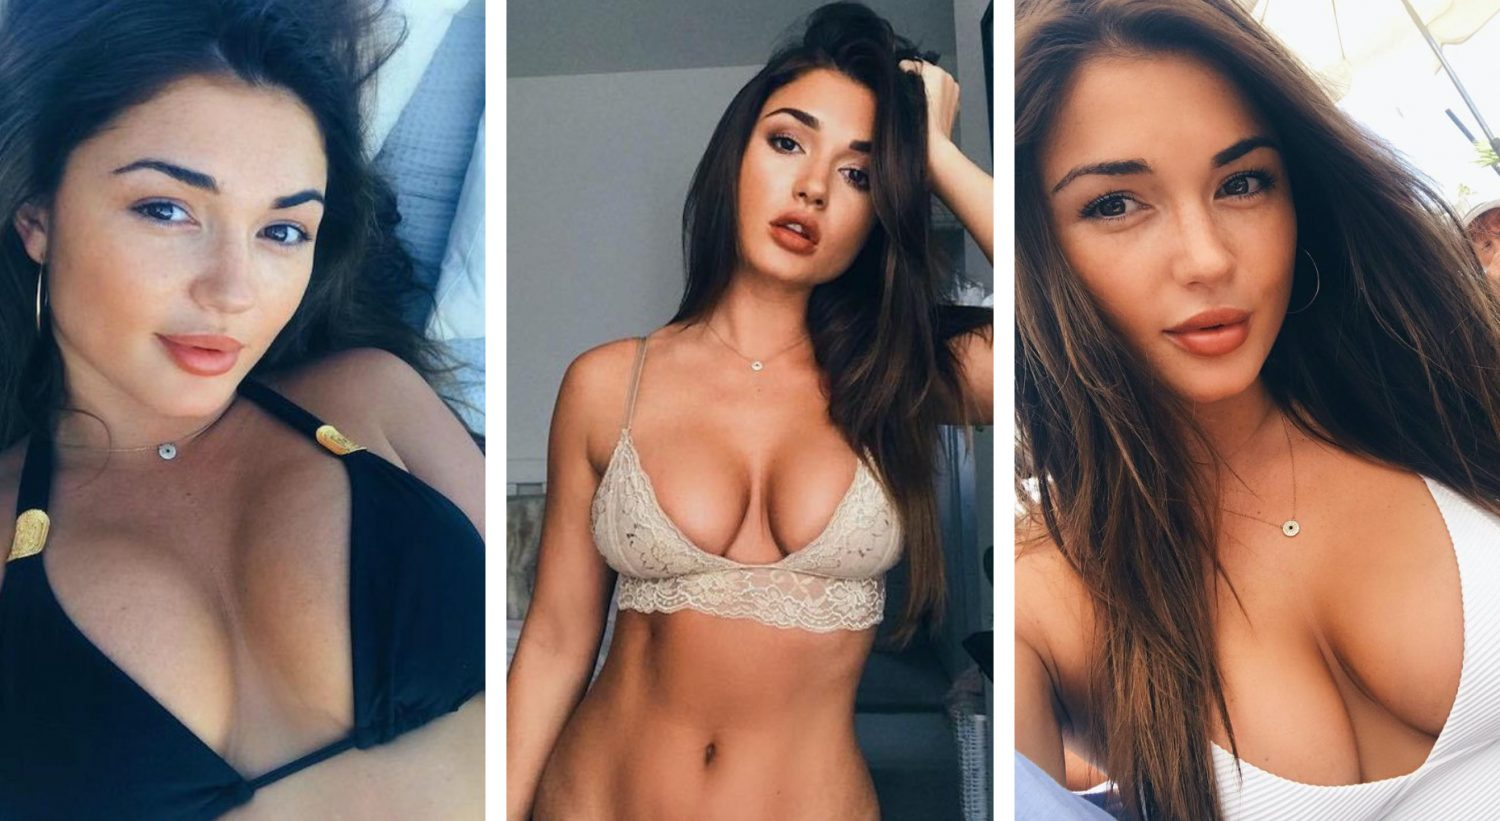 india reynolds shows off curvy and revealing body